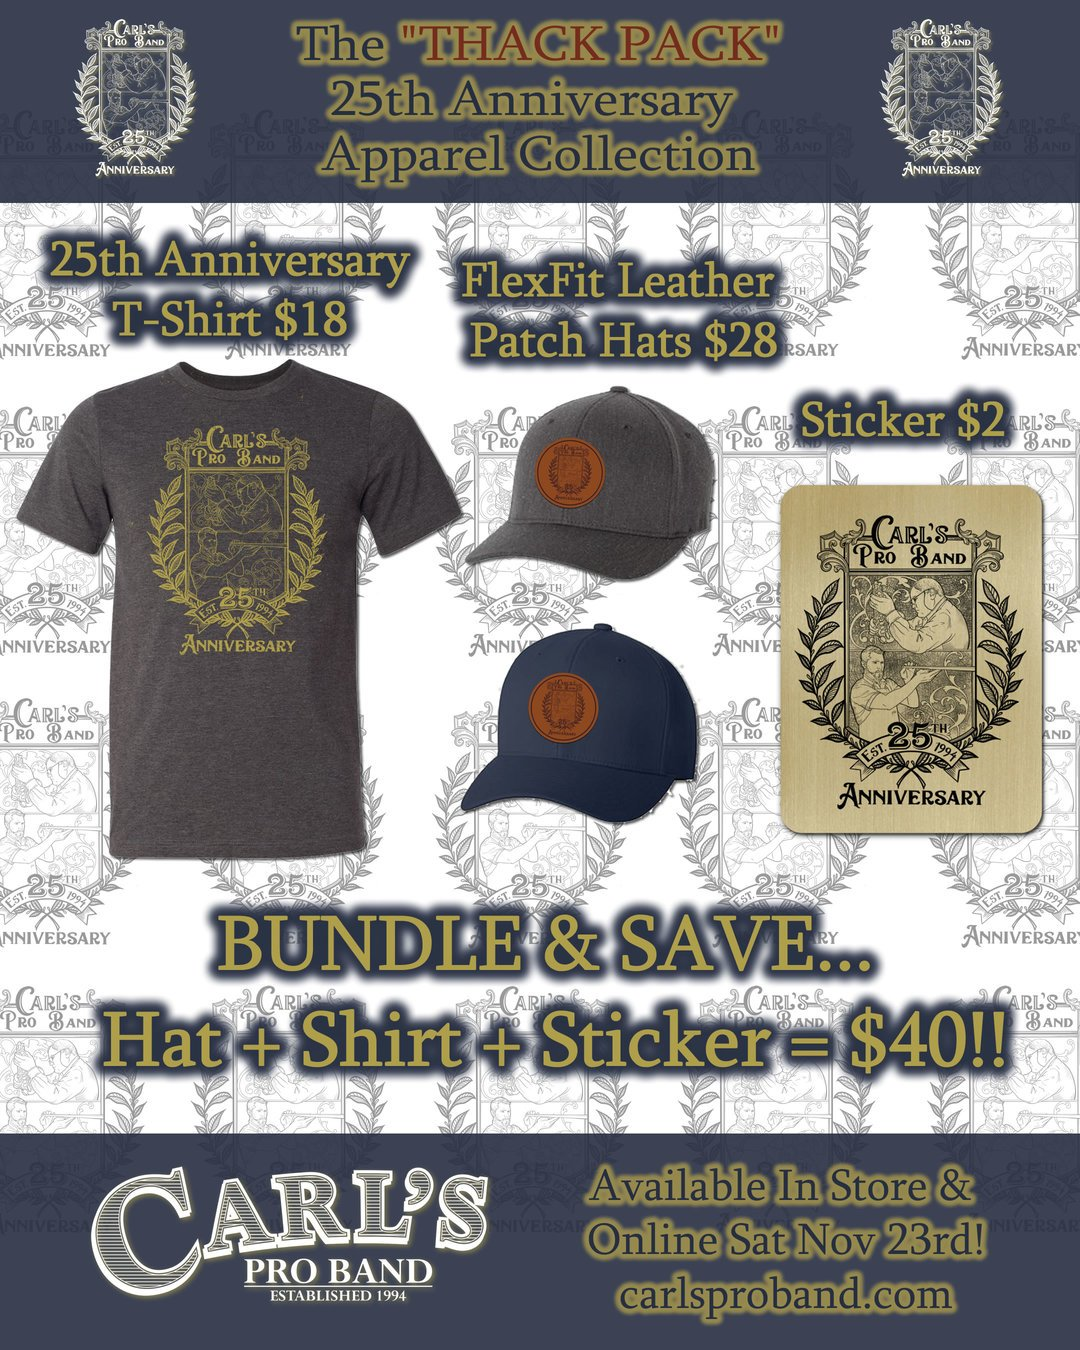 CPB 25th Anniversary Thack Pack Bundle